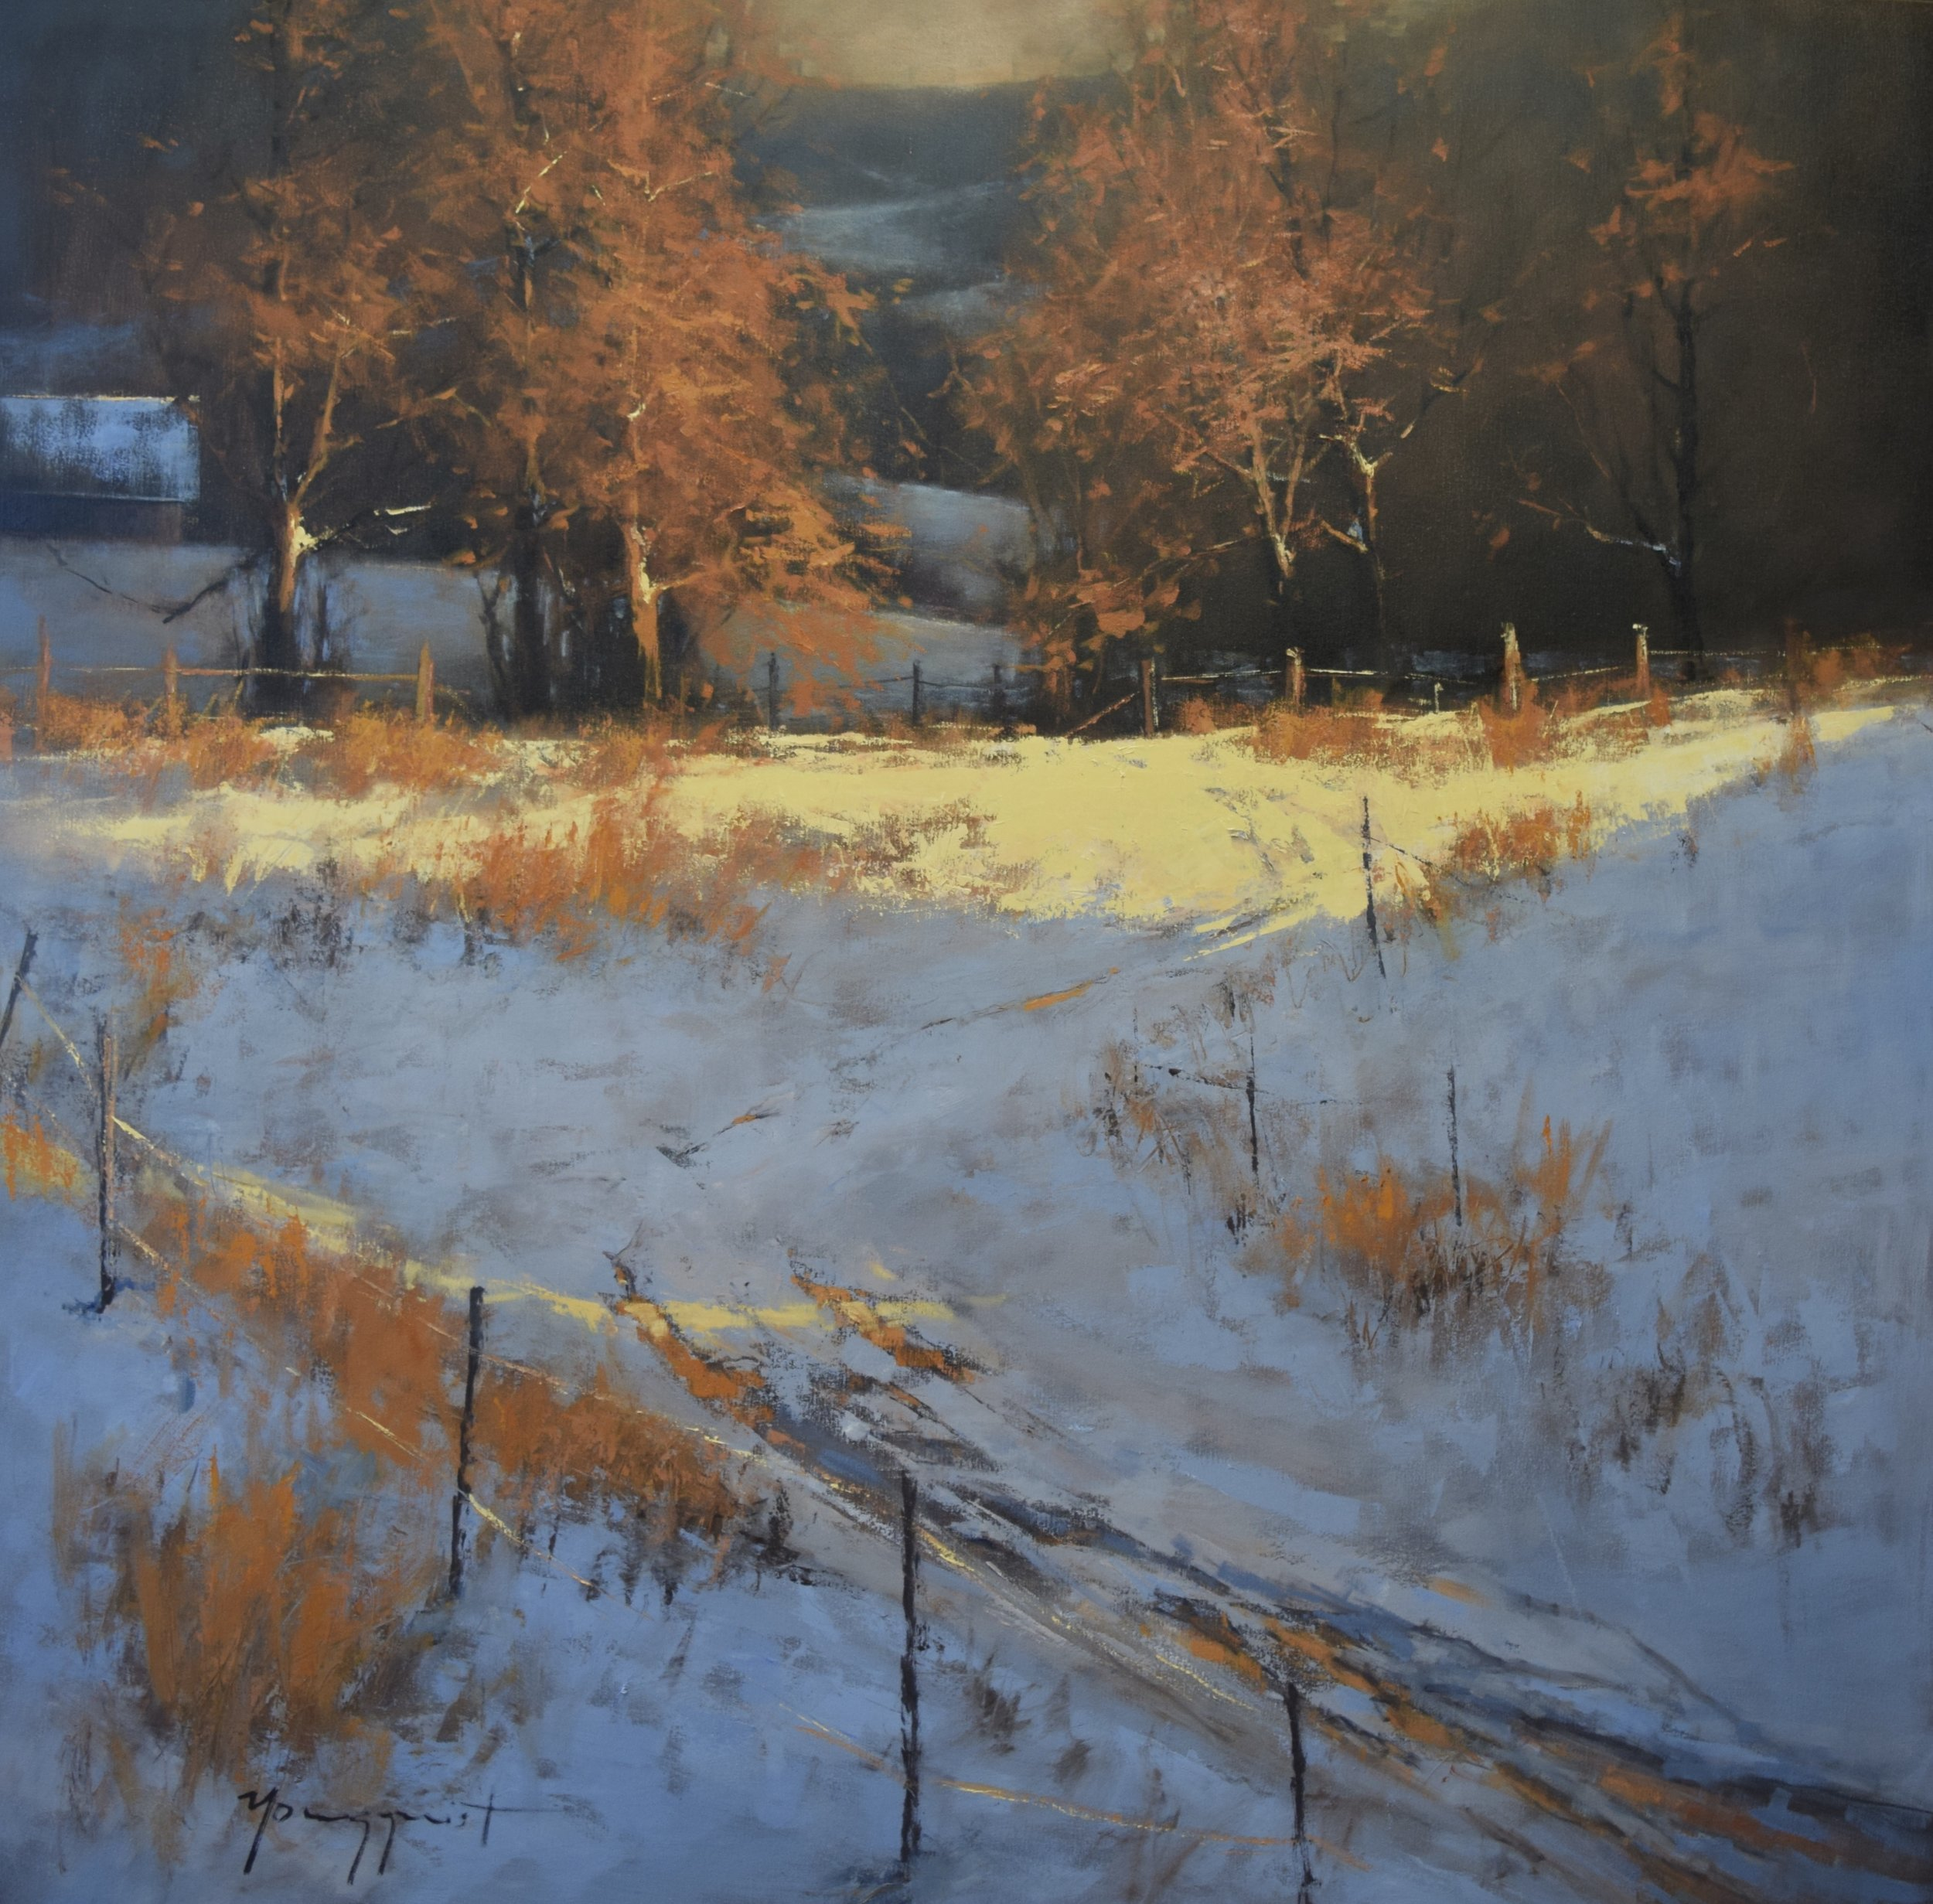 Romona Youngquist, Tranquil Snowfall